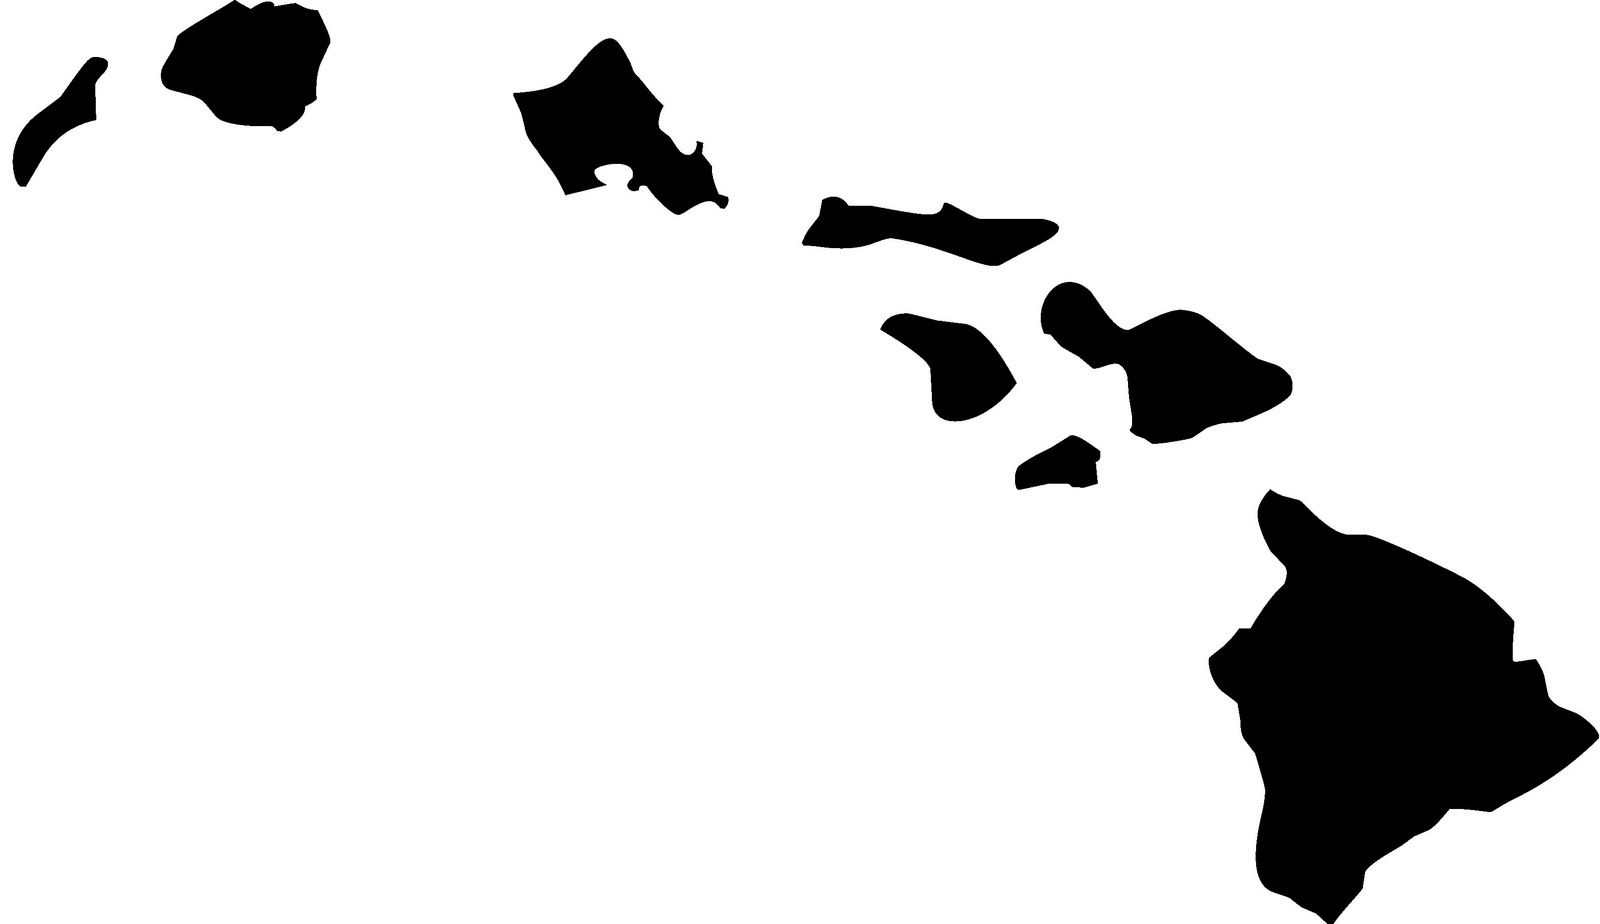 Hawaiian Islands Silhouette